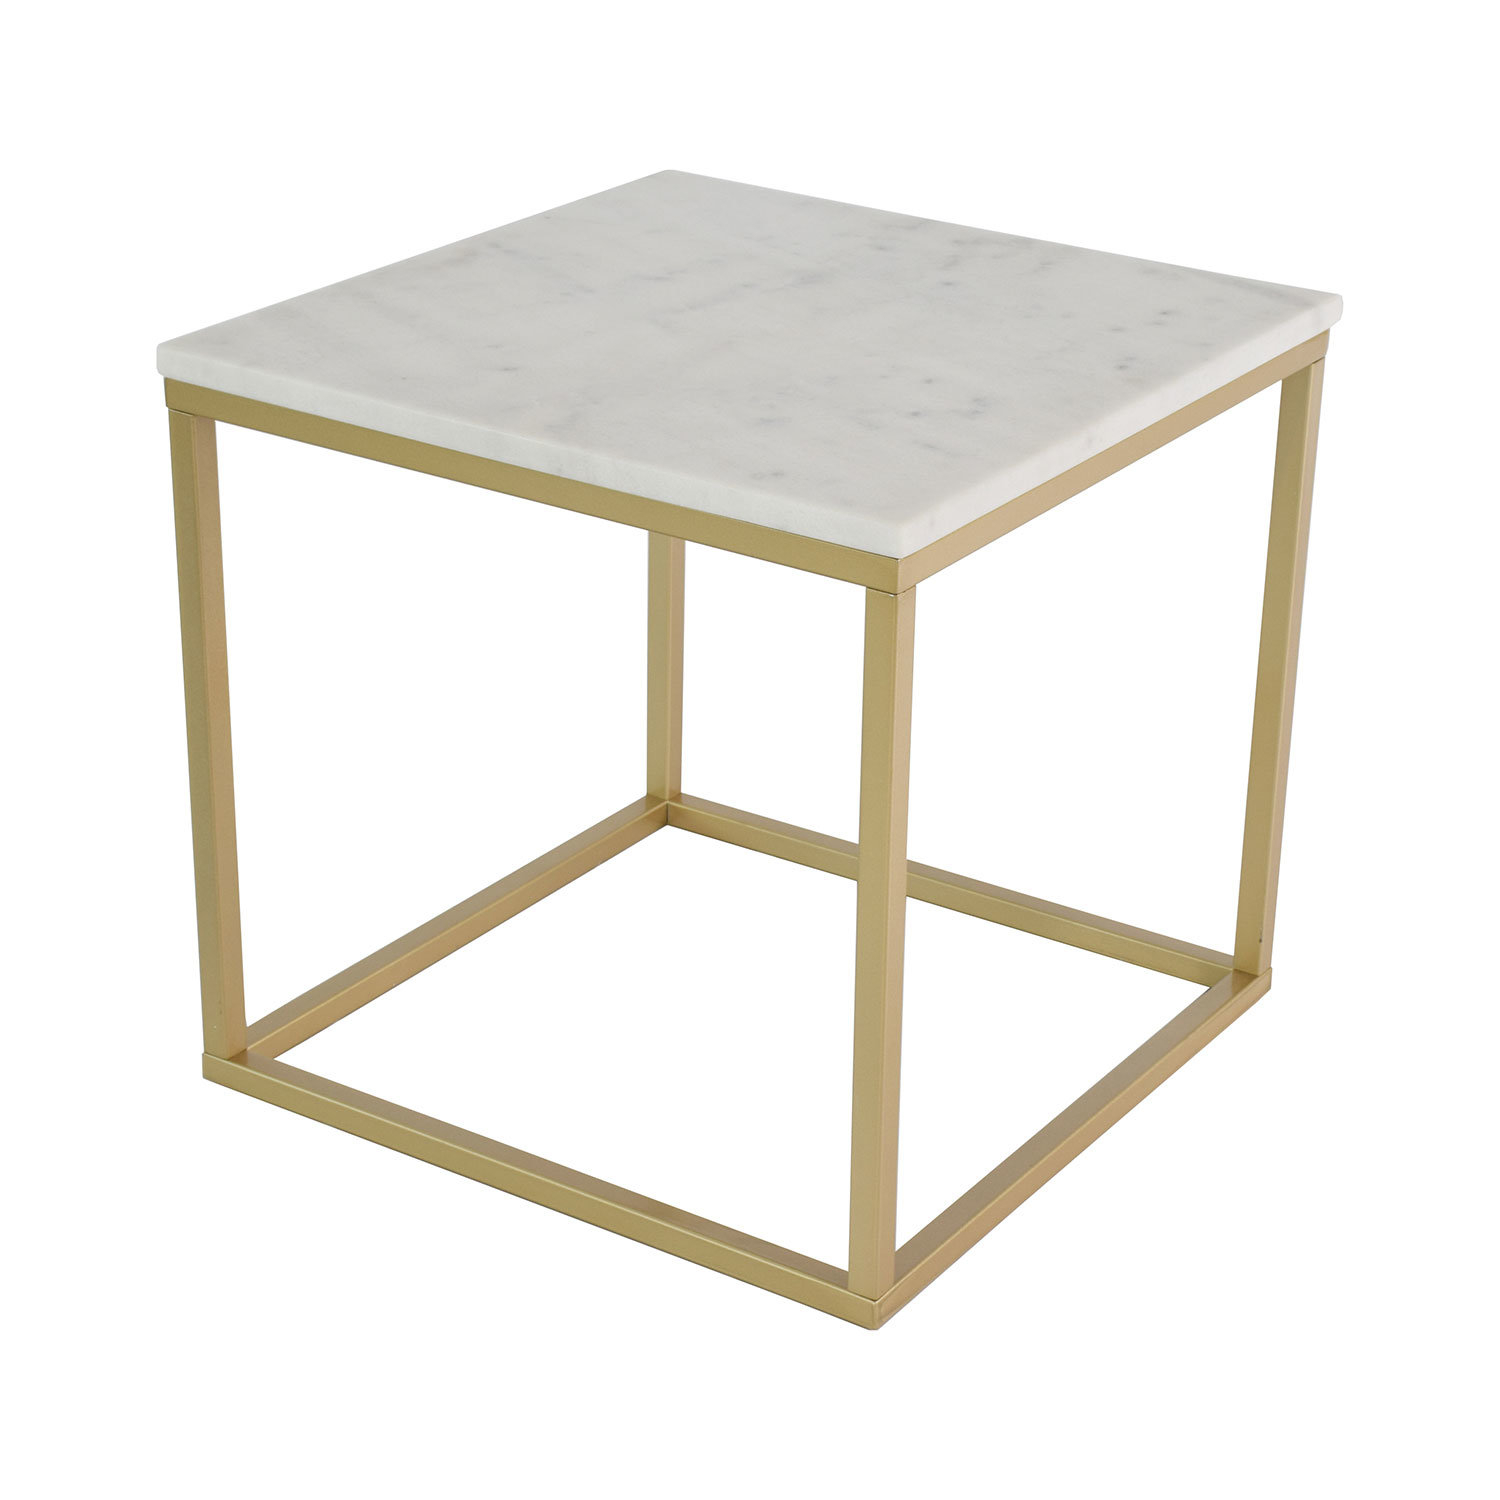 Hazelwood Home Marble Square Coffee Table Wayfaircouk for size 1500 X 1500